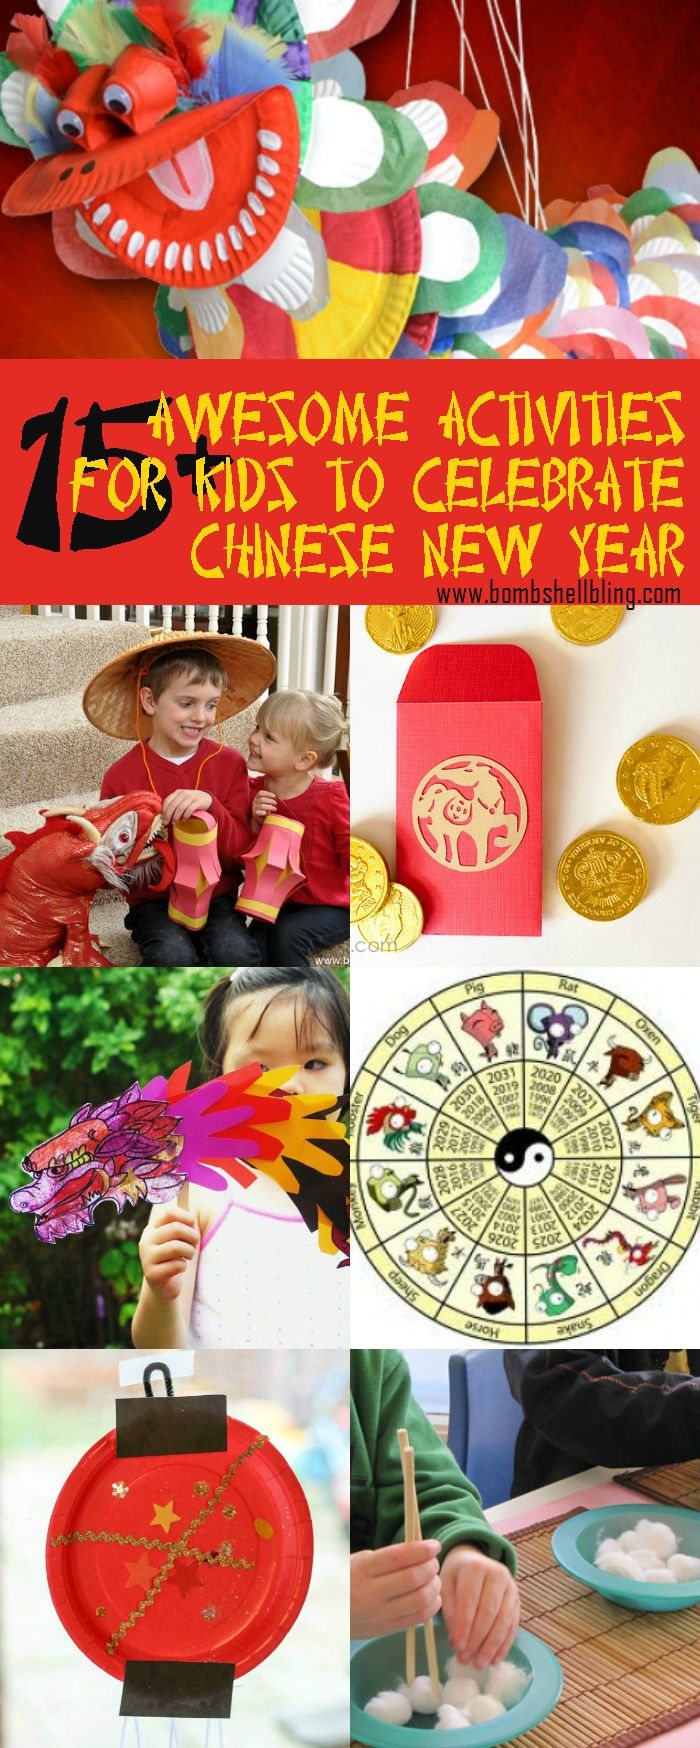 15 Chinese New Year Activities for Kids